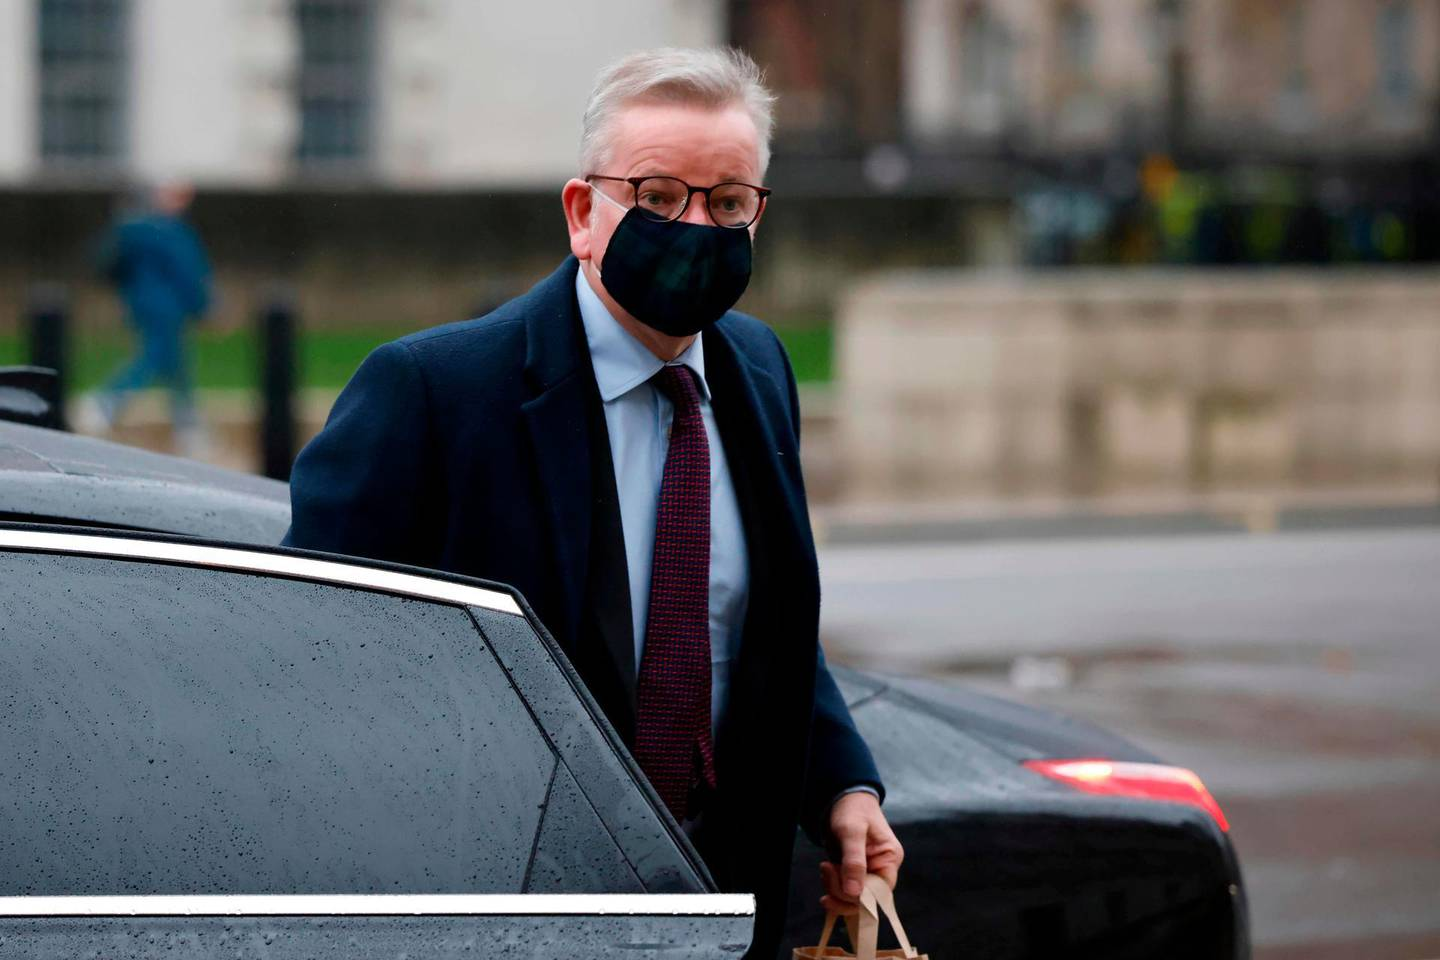 """Britain's Chancellor of the Duchy of Lancaster Michael Gove arrives at the Whitehall entrance of the Cabinet Office in central London on December 21, 2020. The British prime minister was to chair a crisis meeting on December 21 as a growing number of countries blocked flights from Britain over a new highly infectious coronavirus strain the UK said was """"out of control"""".  / AFP / Tolga Akmen"""